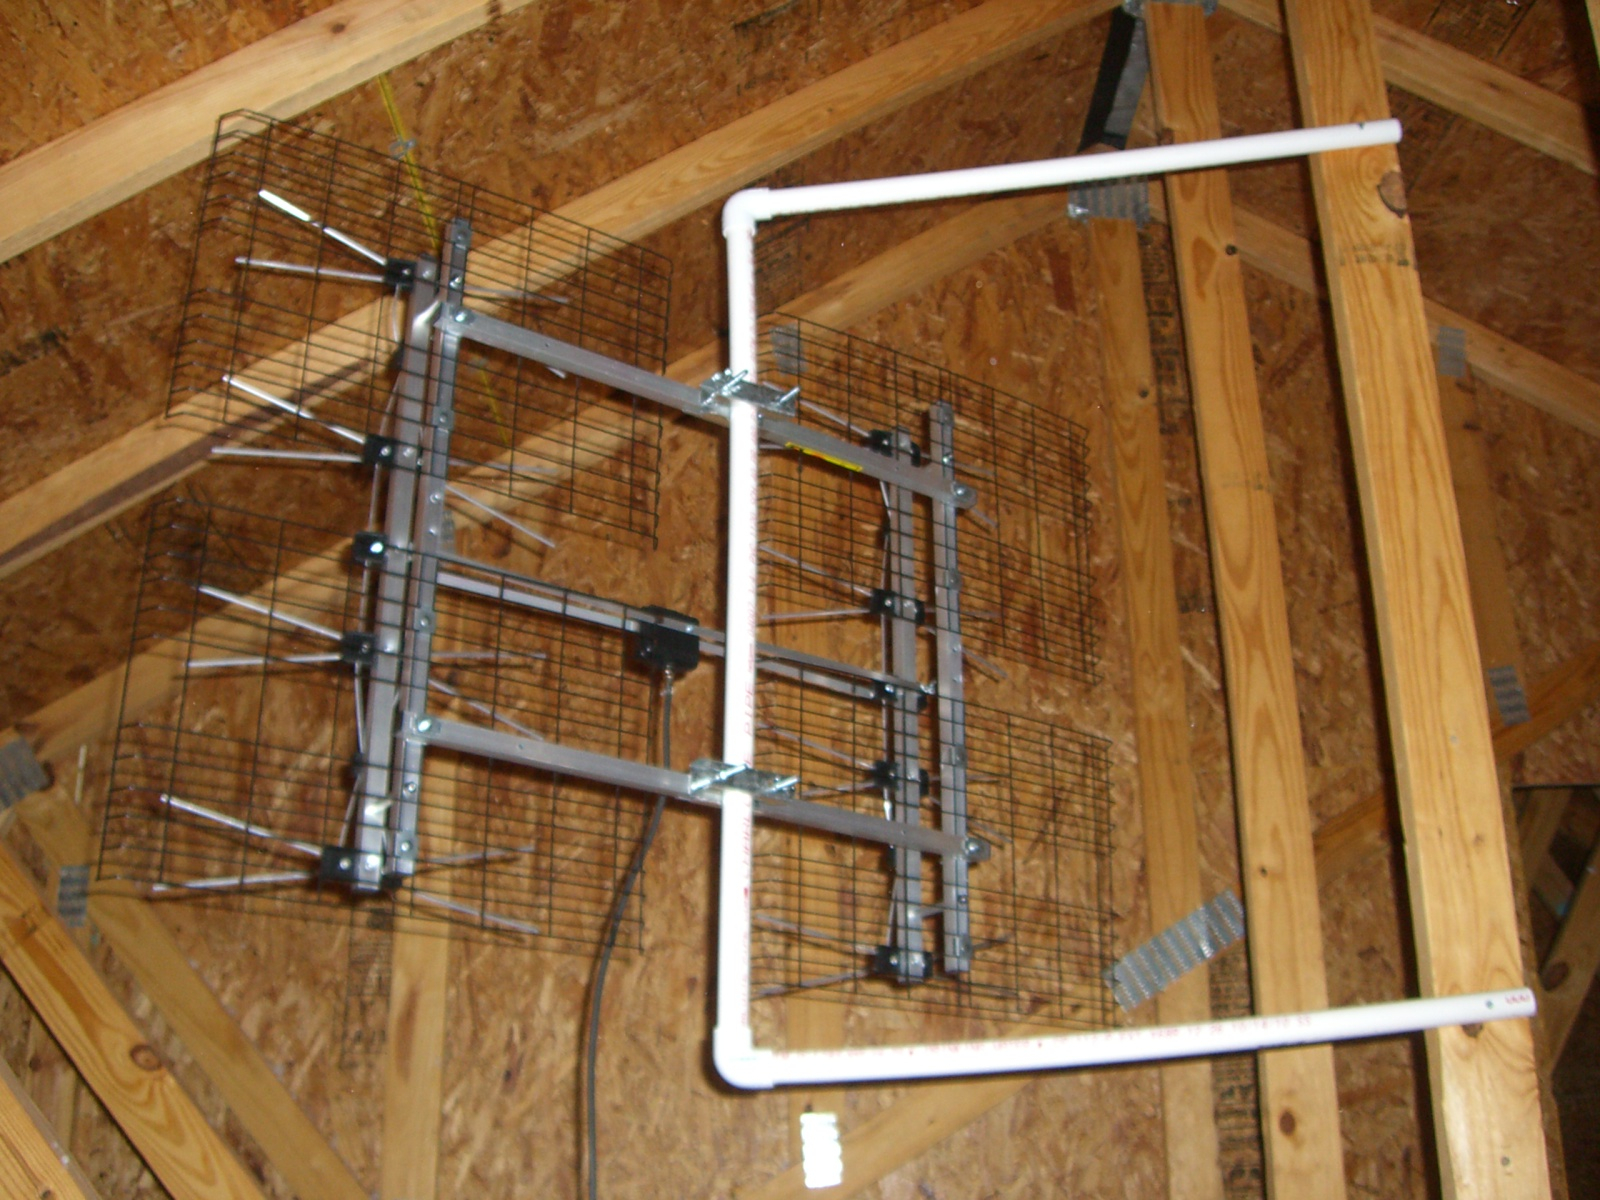 Best Digital Antenna For Attic Attic Ideas